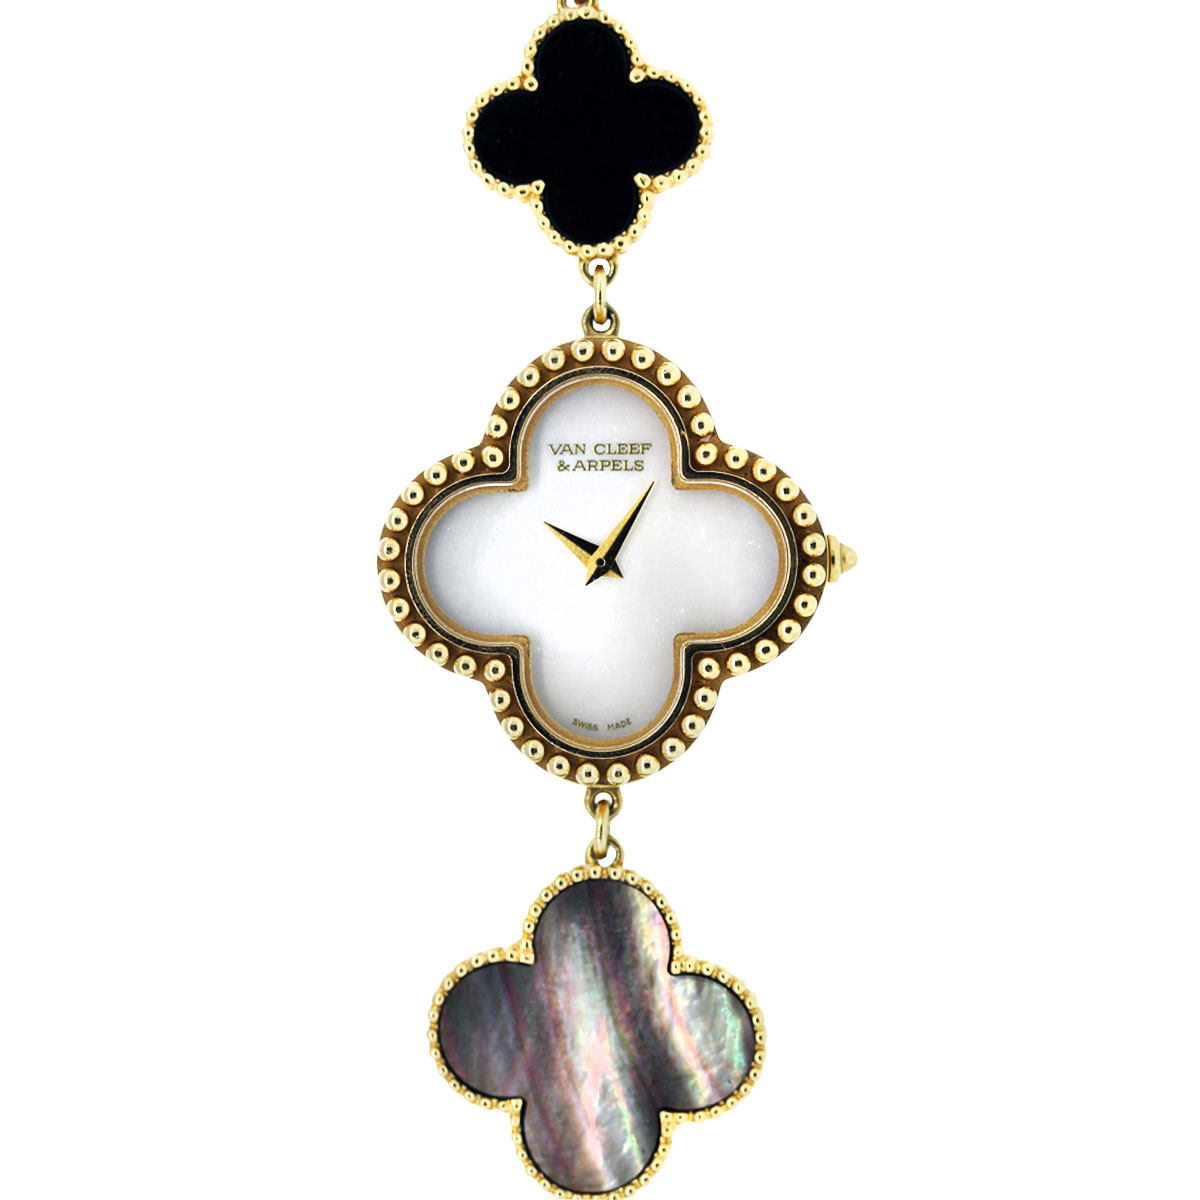 Van Cleef and Arpels Alhambra MOP and Onyx Watch-Boca Raton